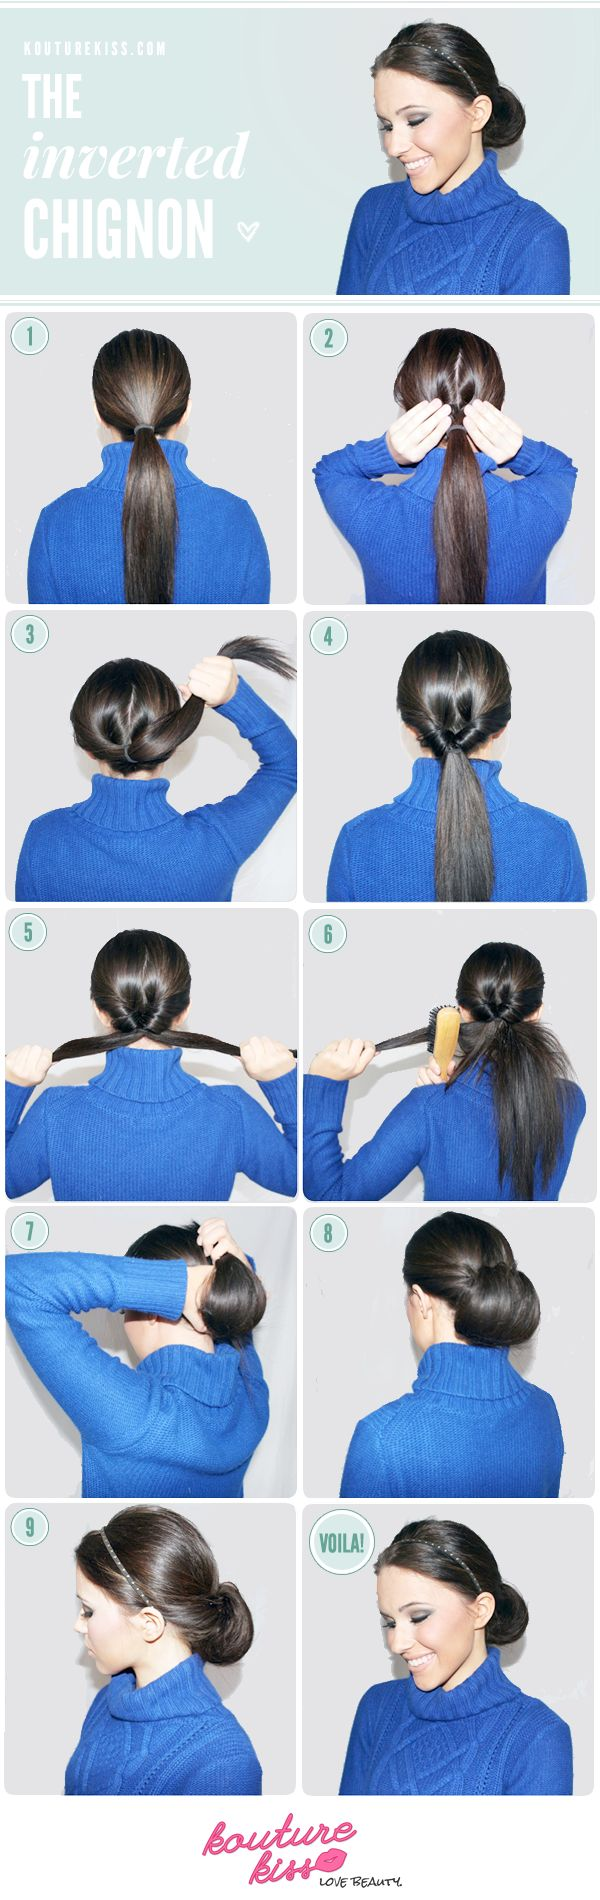 The Inverted Chignon